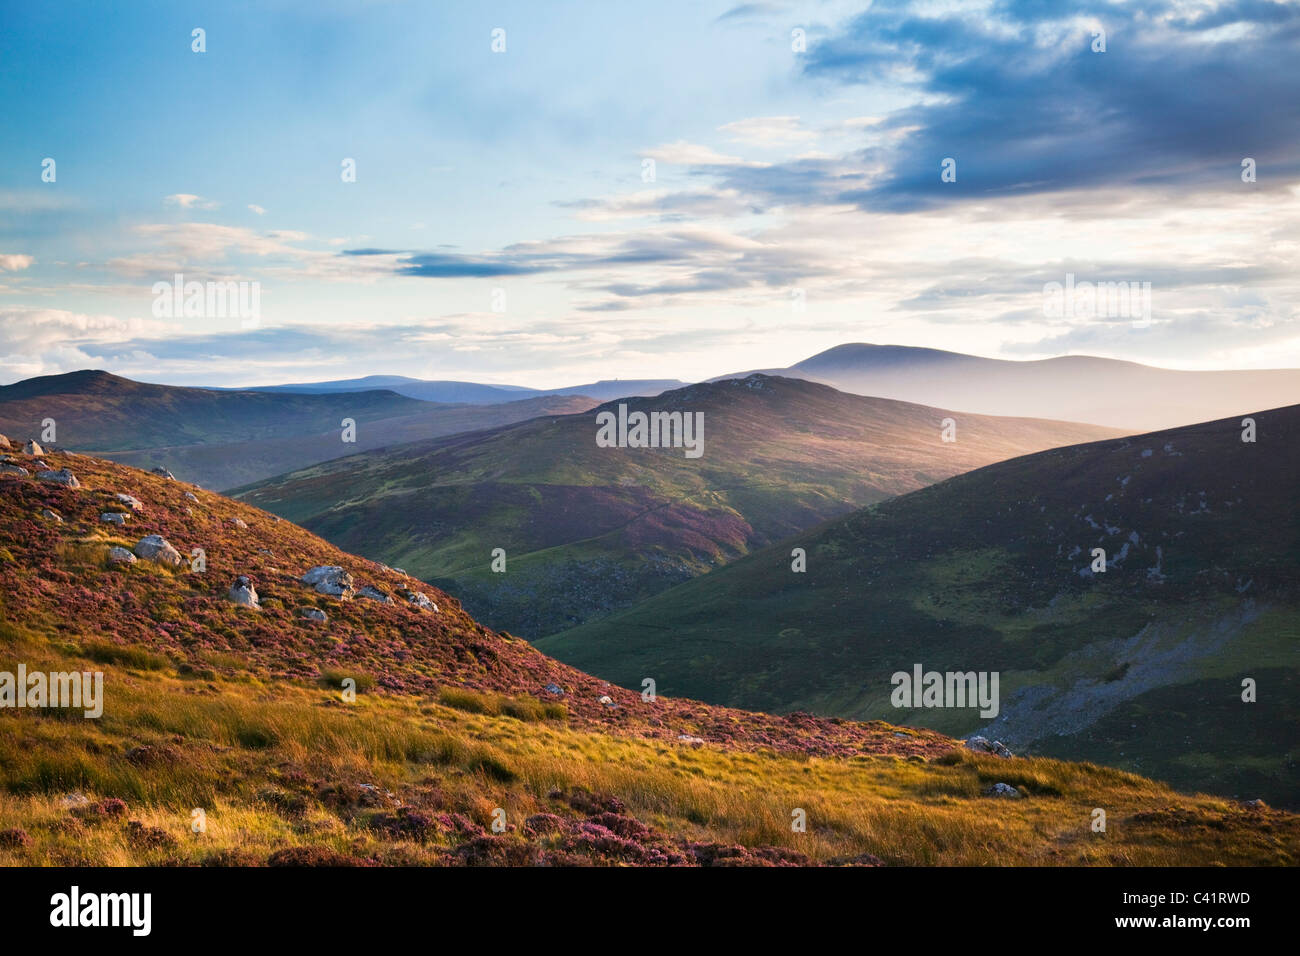 Evening in the Wicklow Mountains, County Wicklow, Ireland. - Stock Image